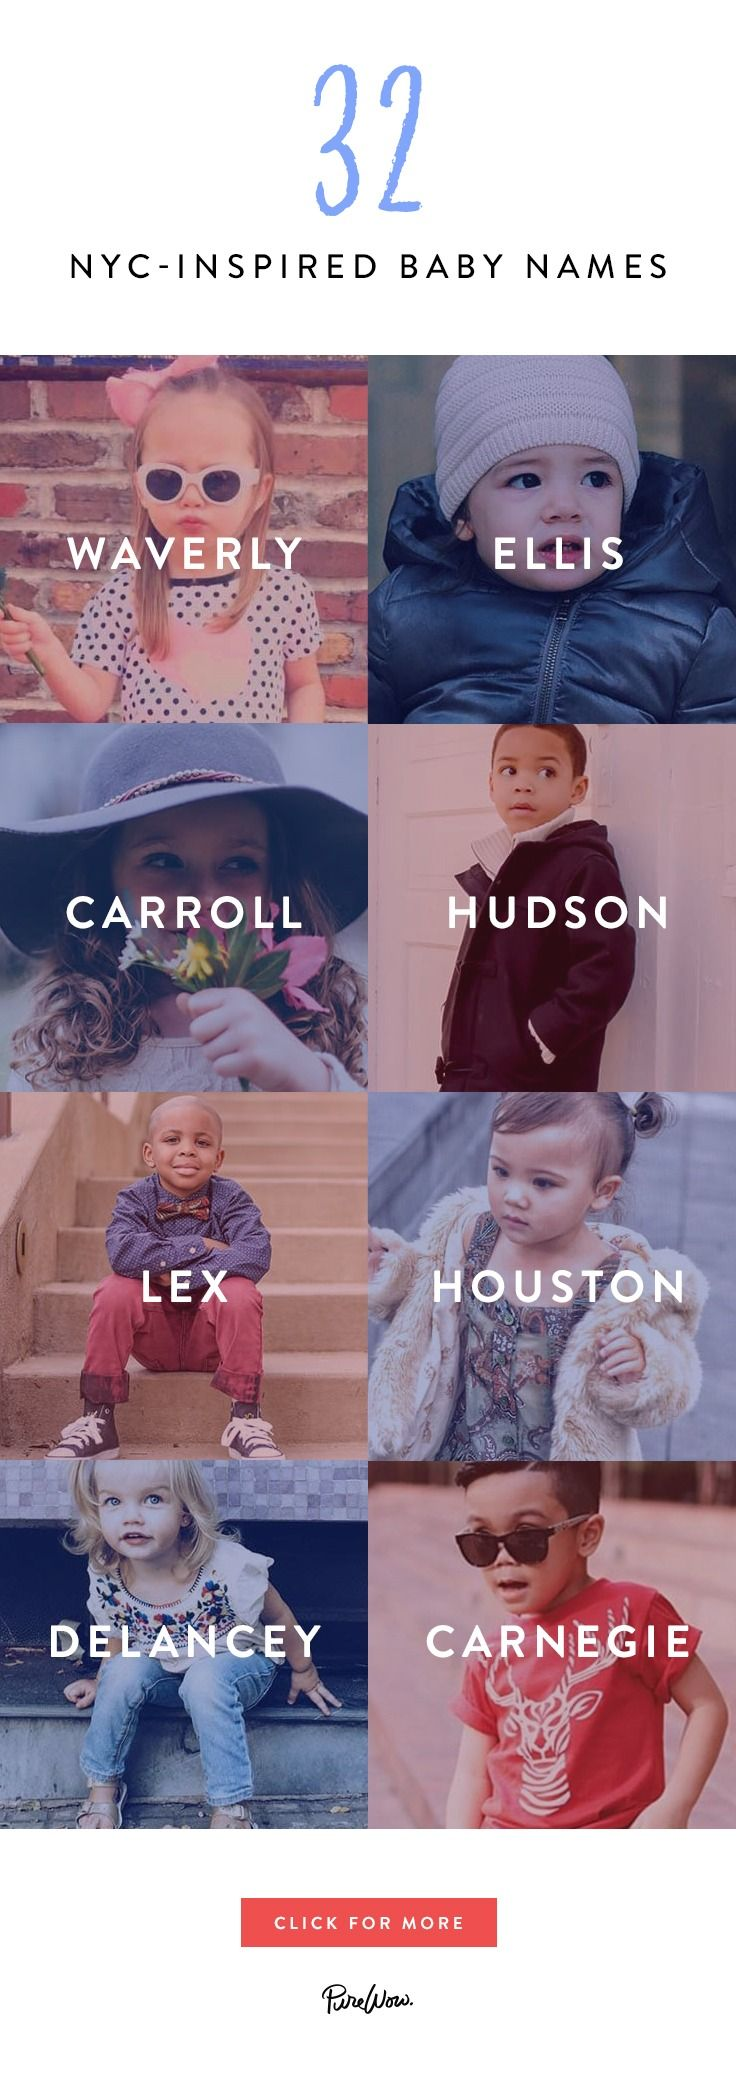 New York kids are the most fabulous in the universe--they love brunch, they've tried kale ice cream and they have their own Instagram fashion accounts. Here's our list of the cutest NYC-inspired baby names.